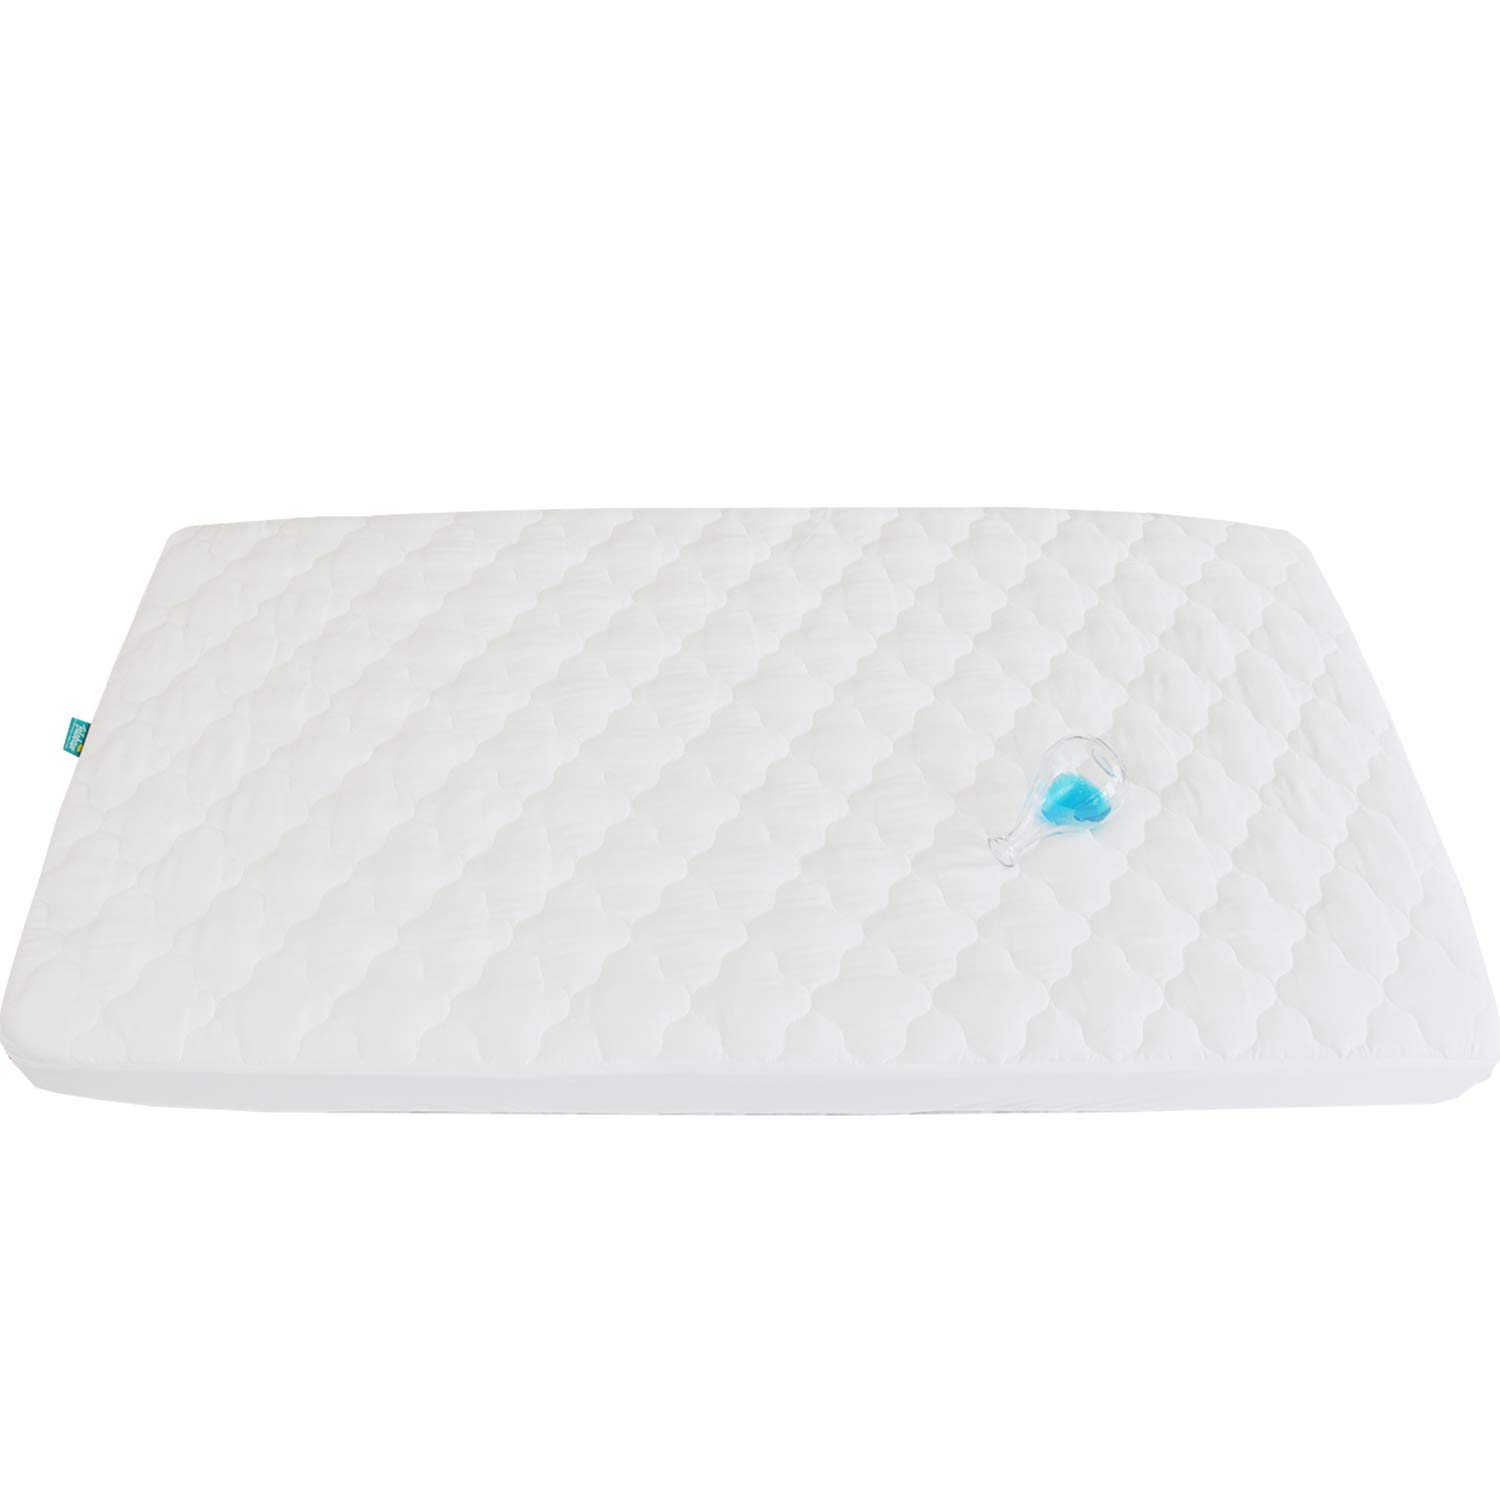 Pack N Play Waterproof Baby Crib Mattress Pad - 39'' x 27'' Fitted Cover Protector for Mini & Portable Playard Mattresses - Hypoallergenic Ultra Soft Padding -White